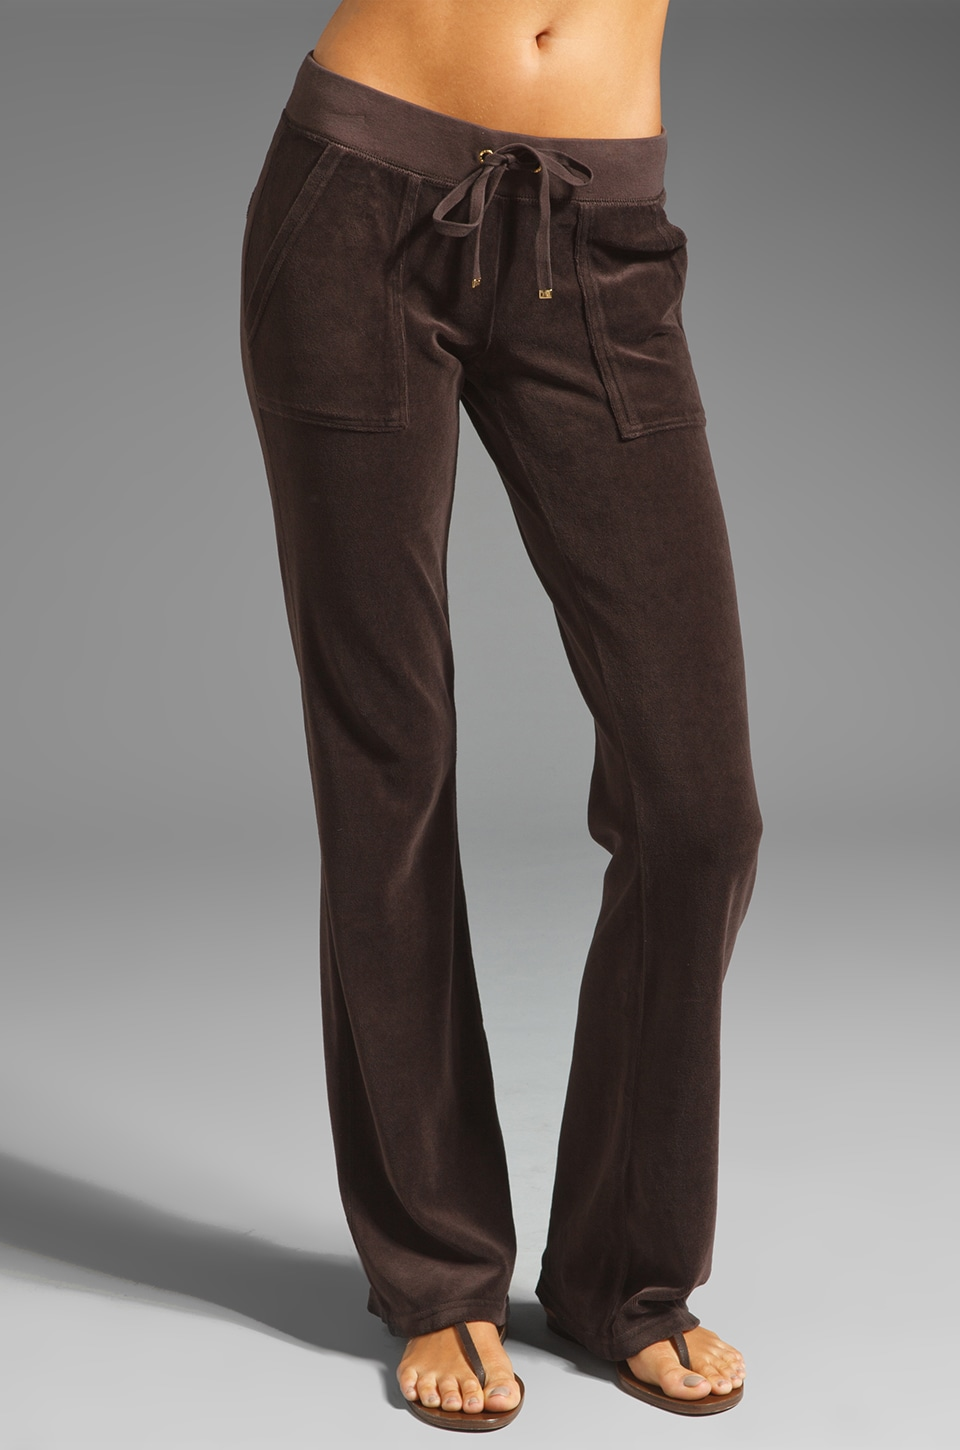 Juicy Couture Bootcut Pant in Chestnut